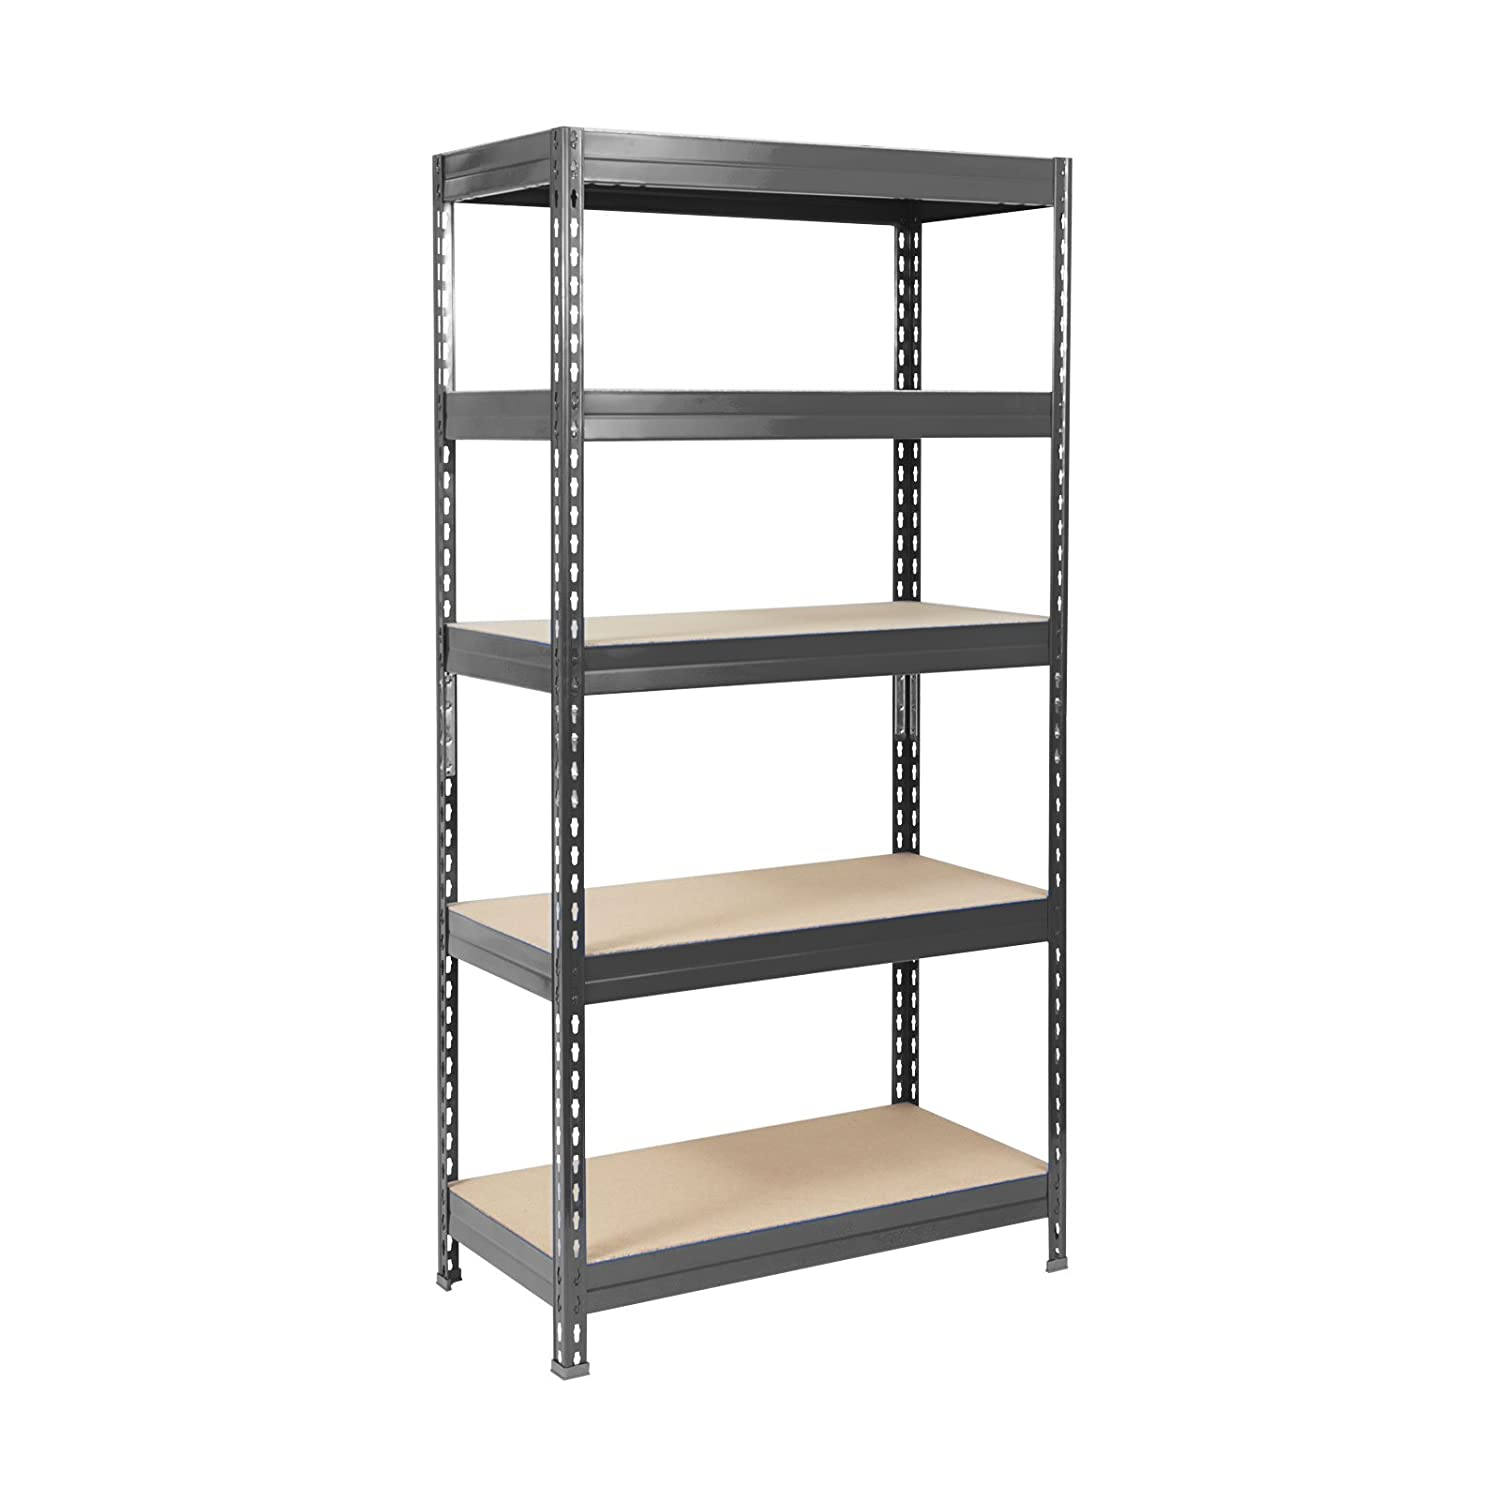 Black Mammut by Office Marshal Heavy-Duty Steel Shelving Capacity 875 kg 9 Sizes//4 Colours Available 90x180x60cm